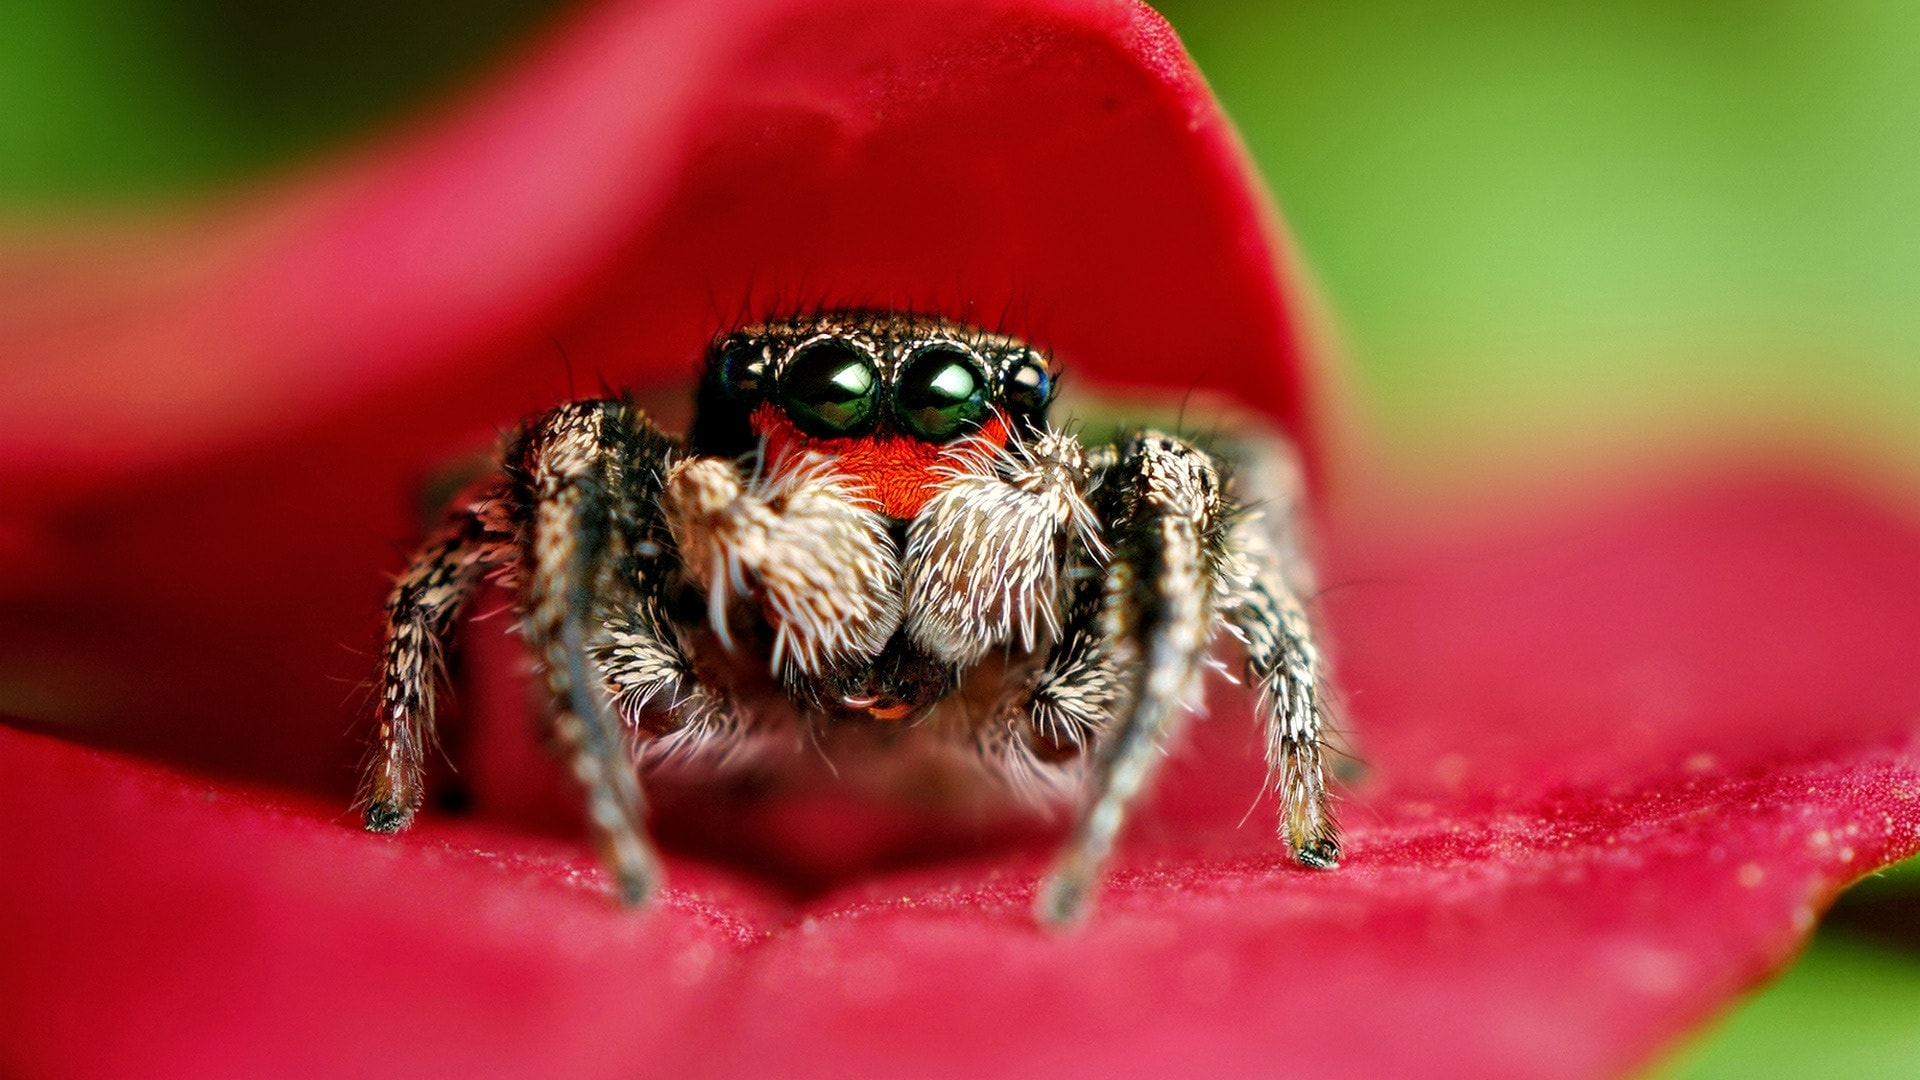 jumping spider hd desktop wallpapers | 7wallpapers